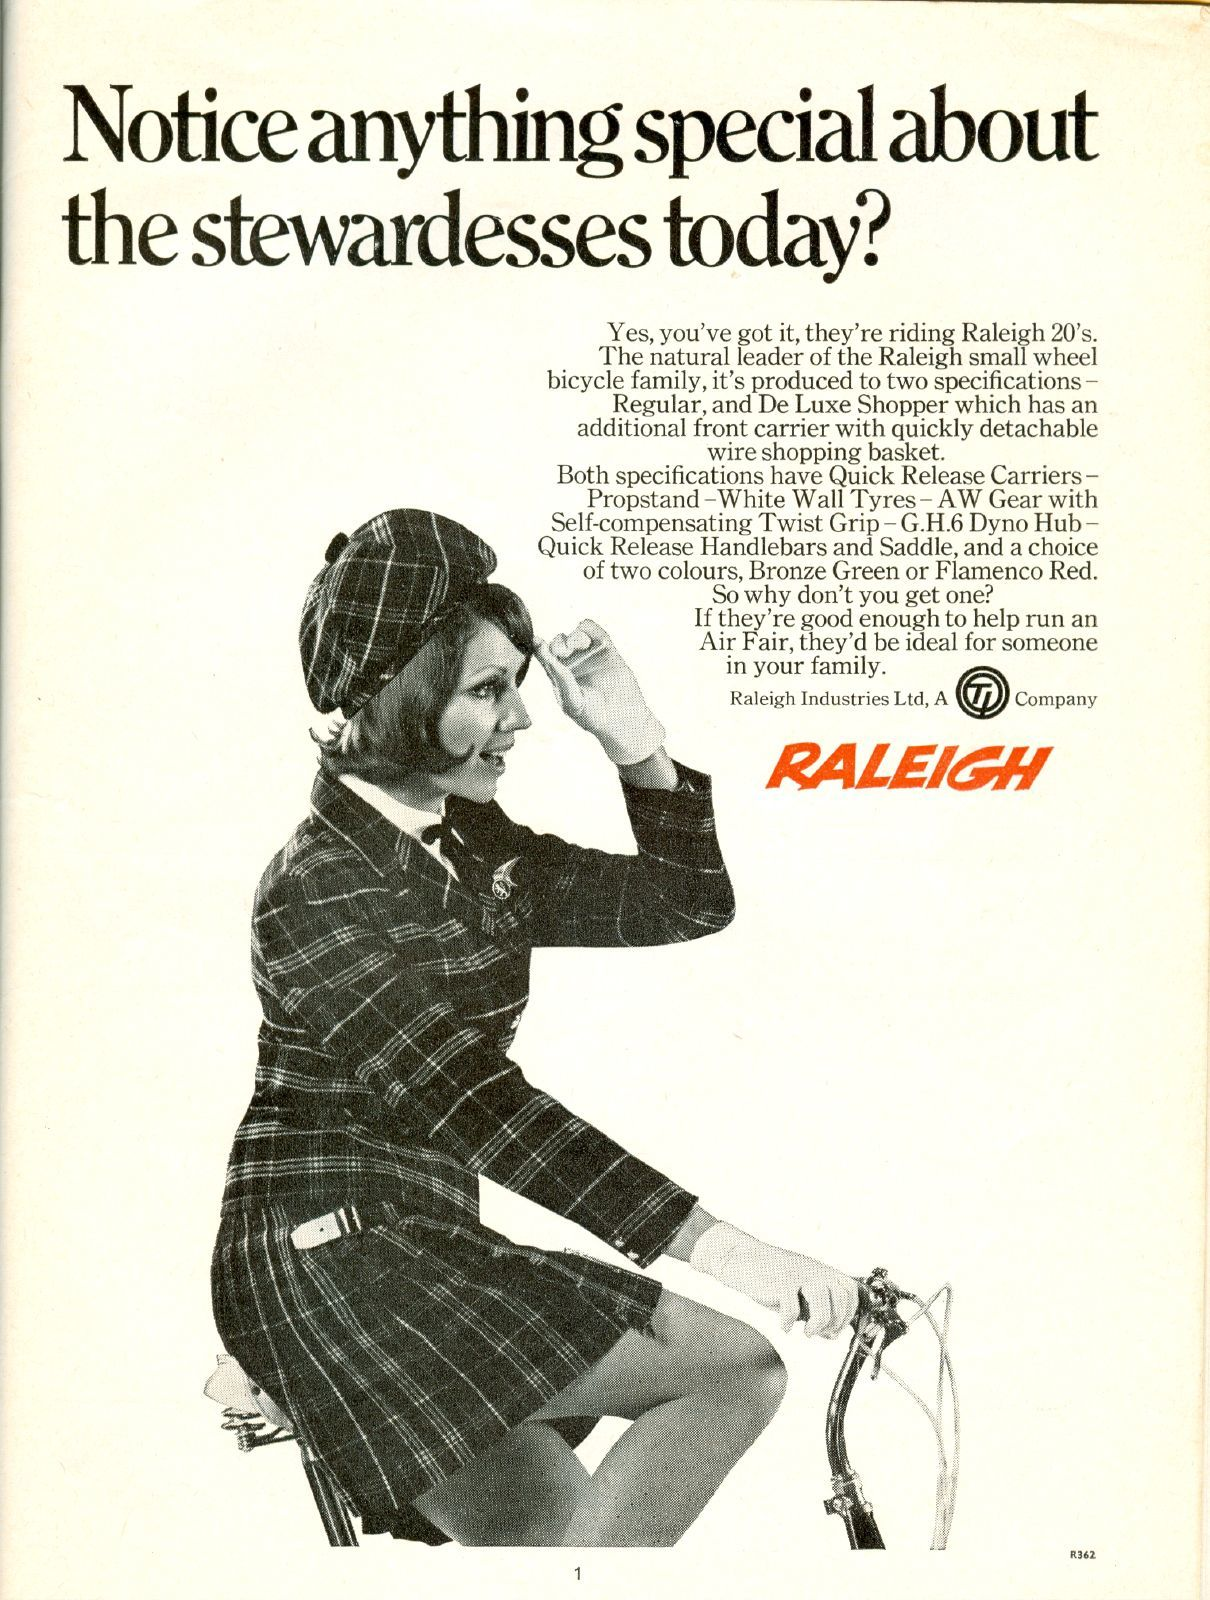 The Rise and Fall of Raleigh – 100 years of Ads.